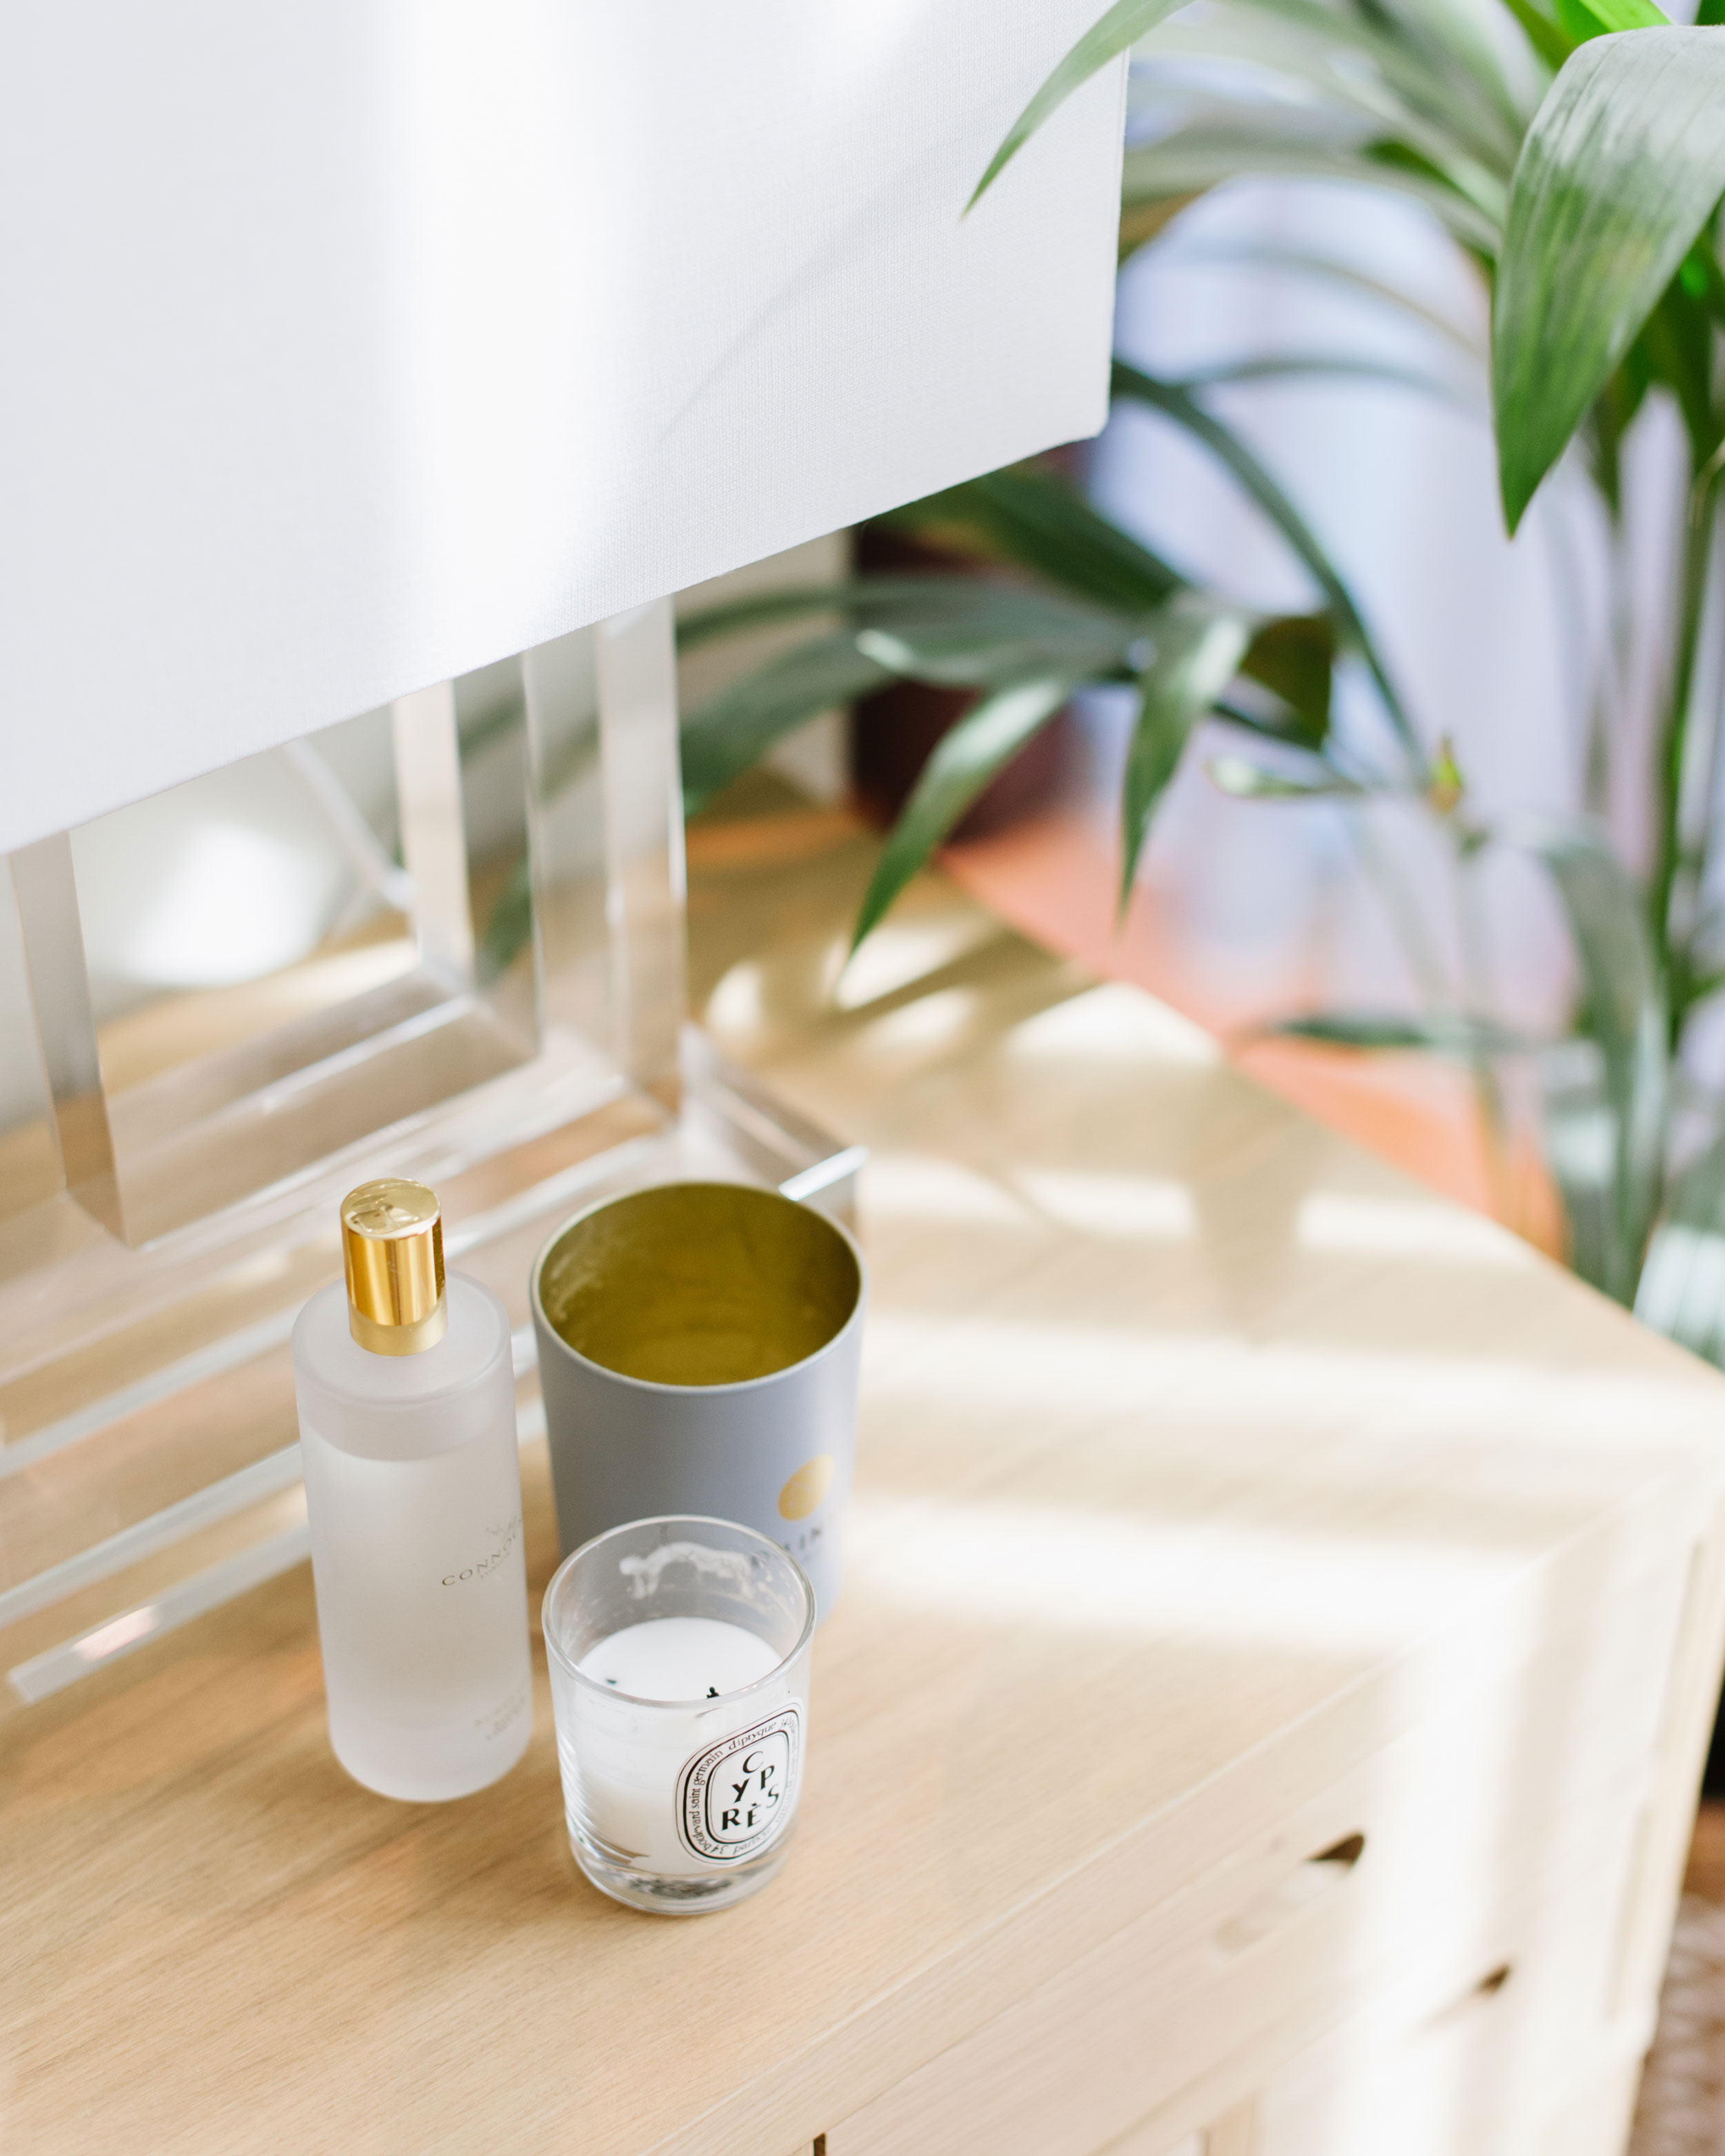 Scented-candles-on-a-sidetable.jpg